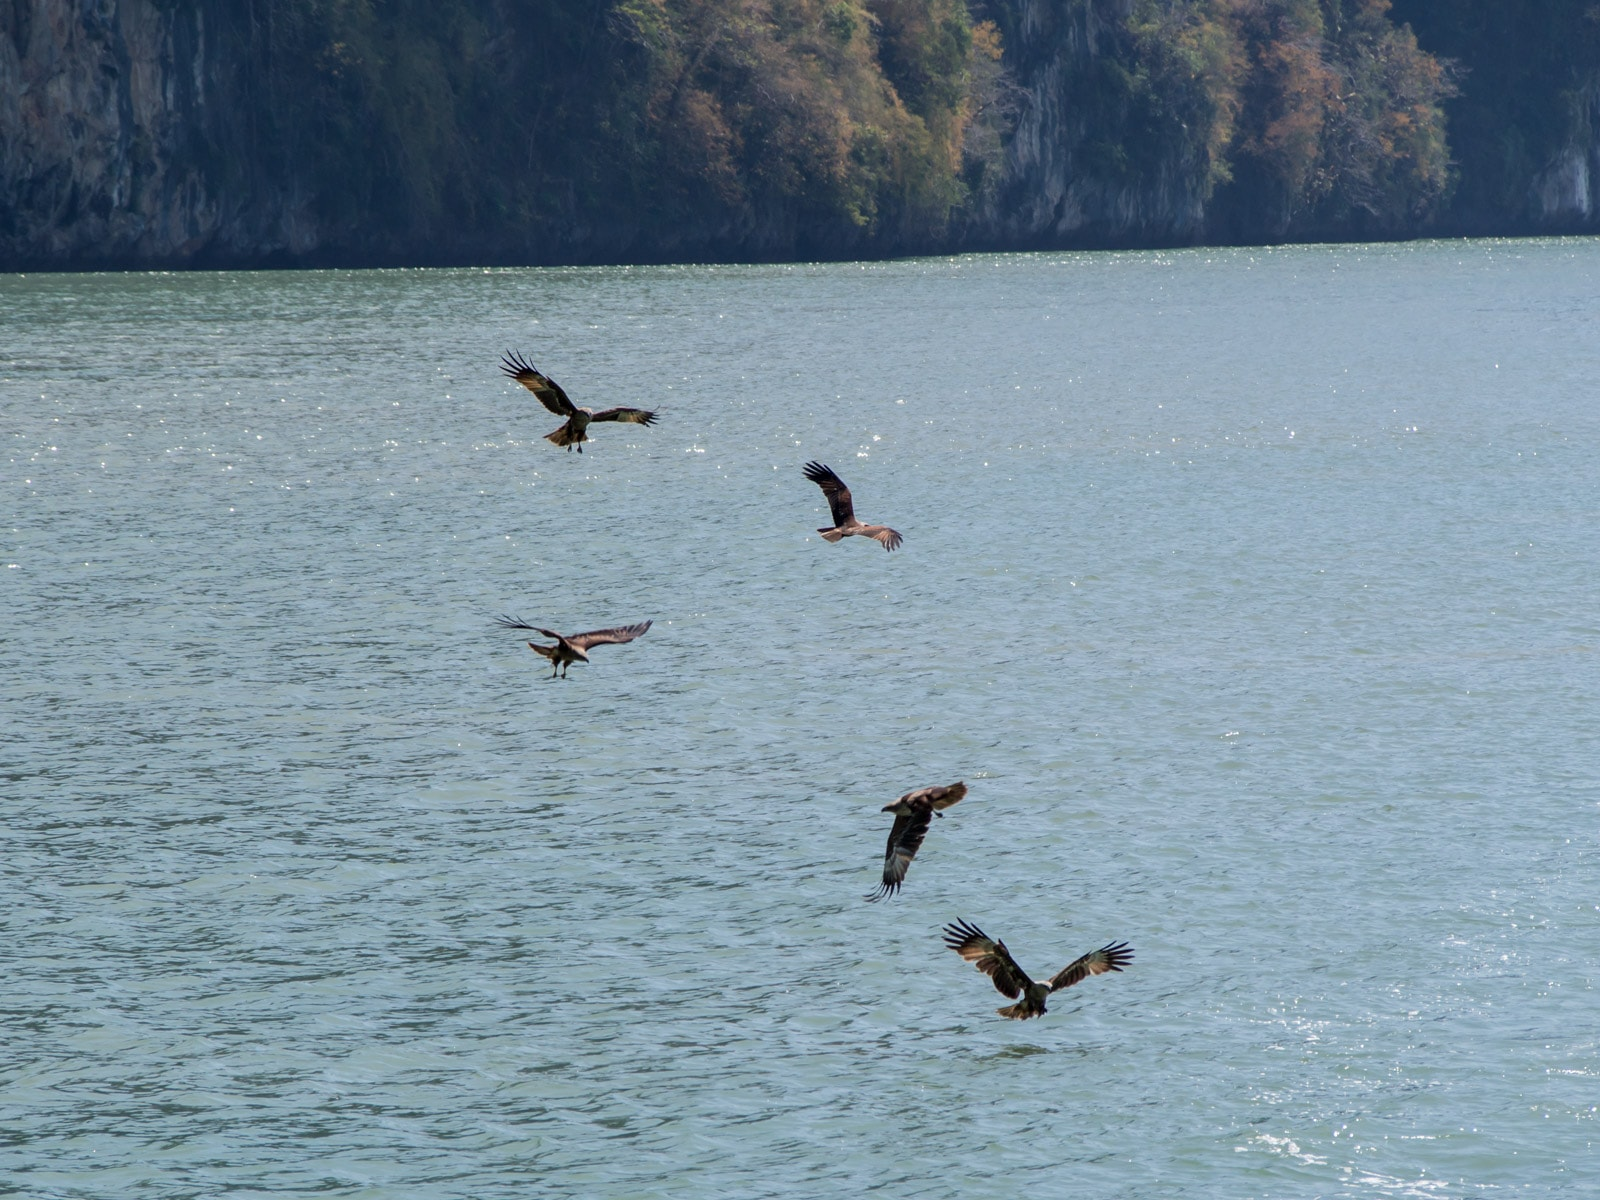 Five Brahminy kites over the water